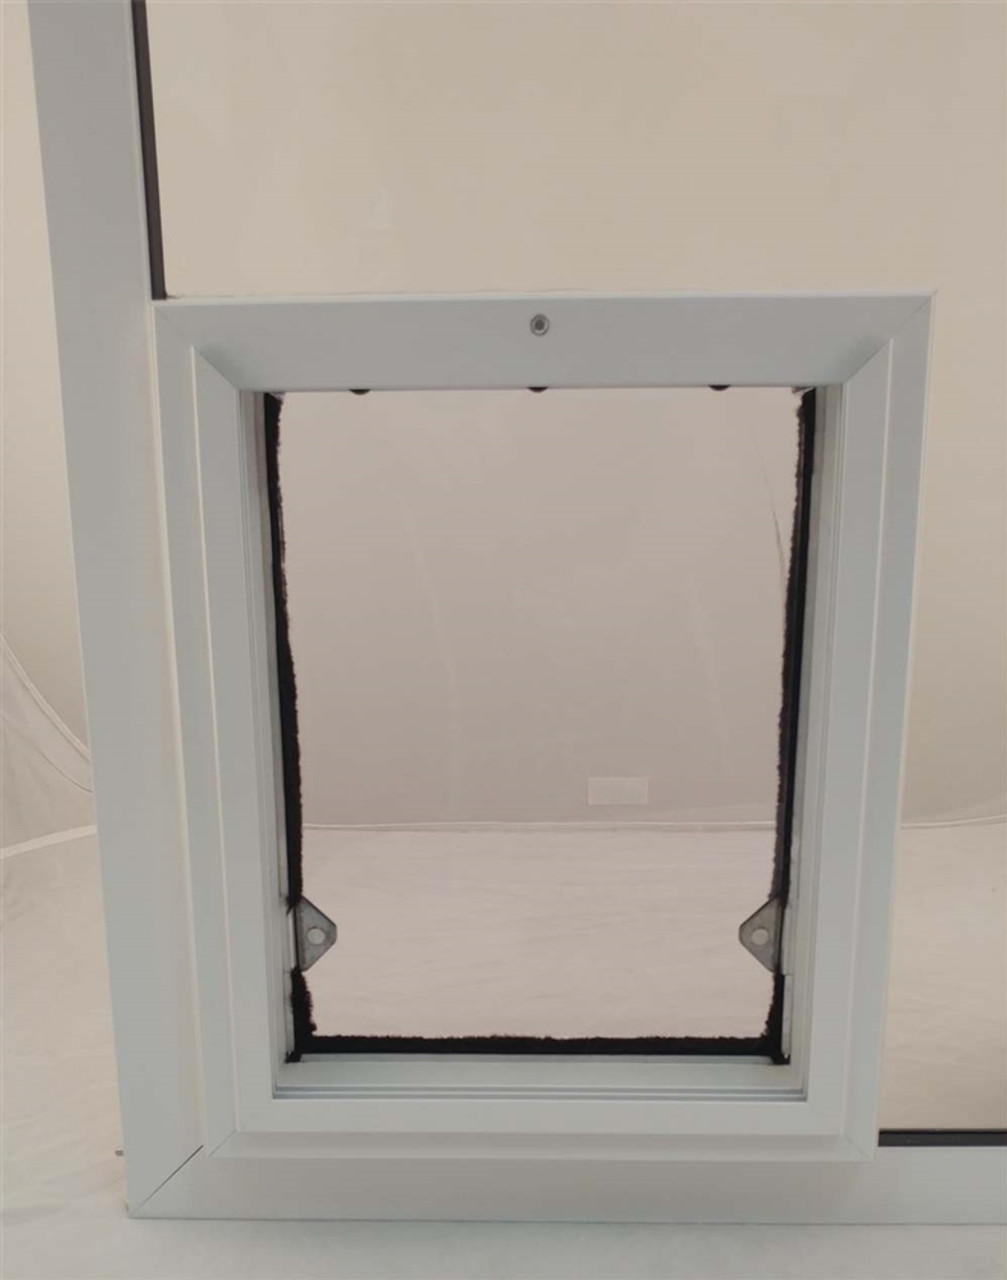 Sb Standard In Glass Pet Door From Security Boss Manufacturing Specially Designed For Installation Into Glass Low Profile Exterior Frame Allow For Full Use Of Sliding Glass Doors High Quality